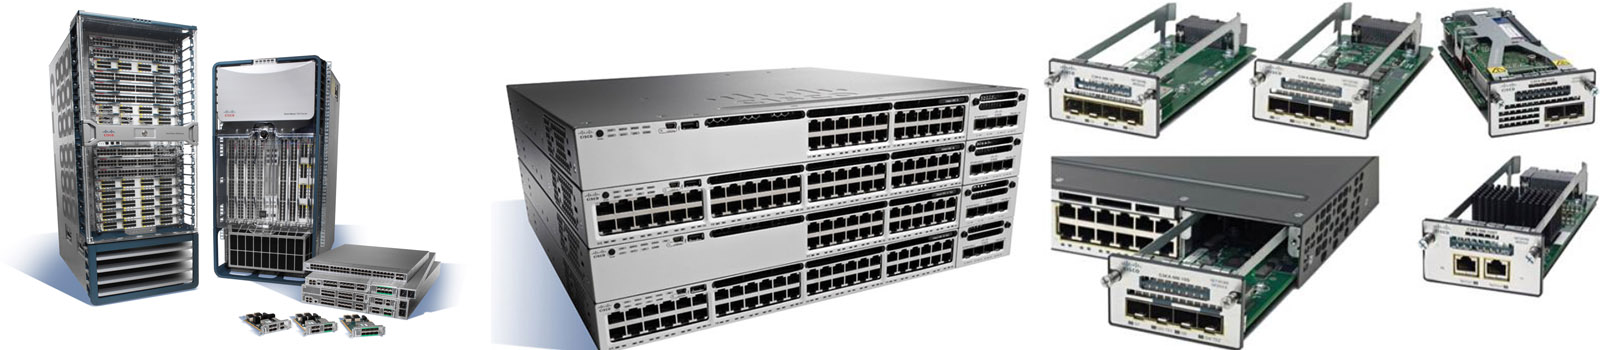 cisco Switches WS-C3650 Rentals and Sales and AMC Support